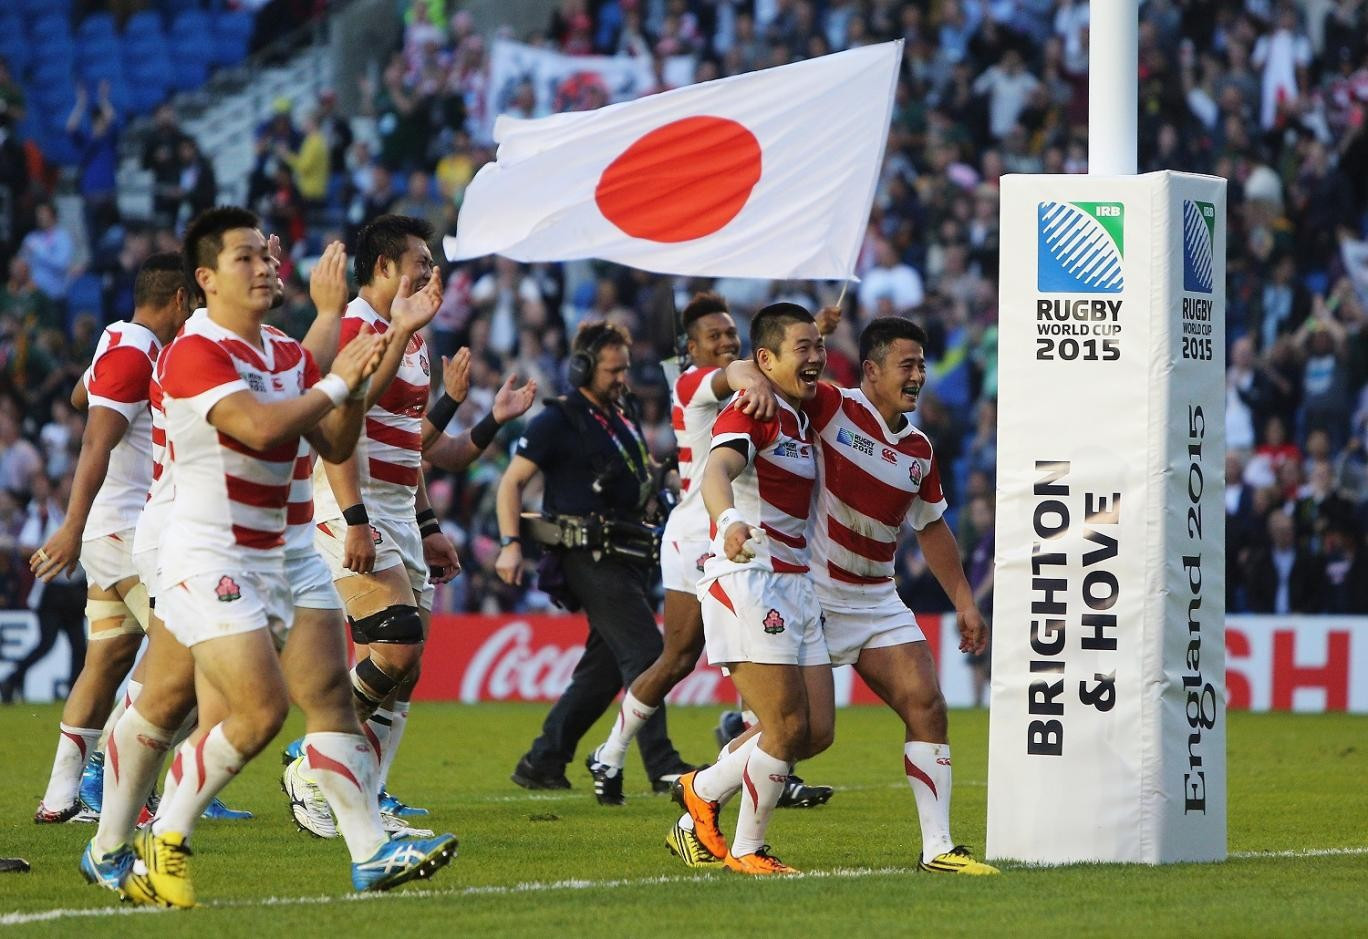 Japan's automatic qualification means that a second Asian nation could qualify for the World Cup for the first time ©Getty Images